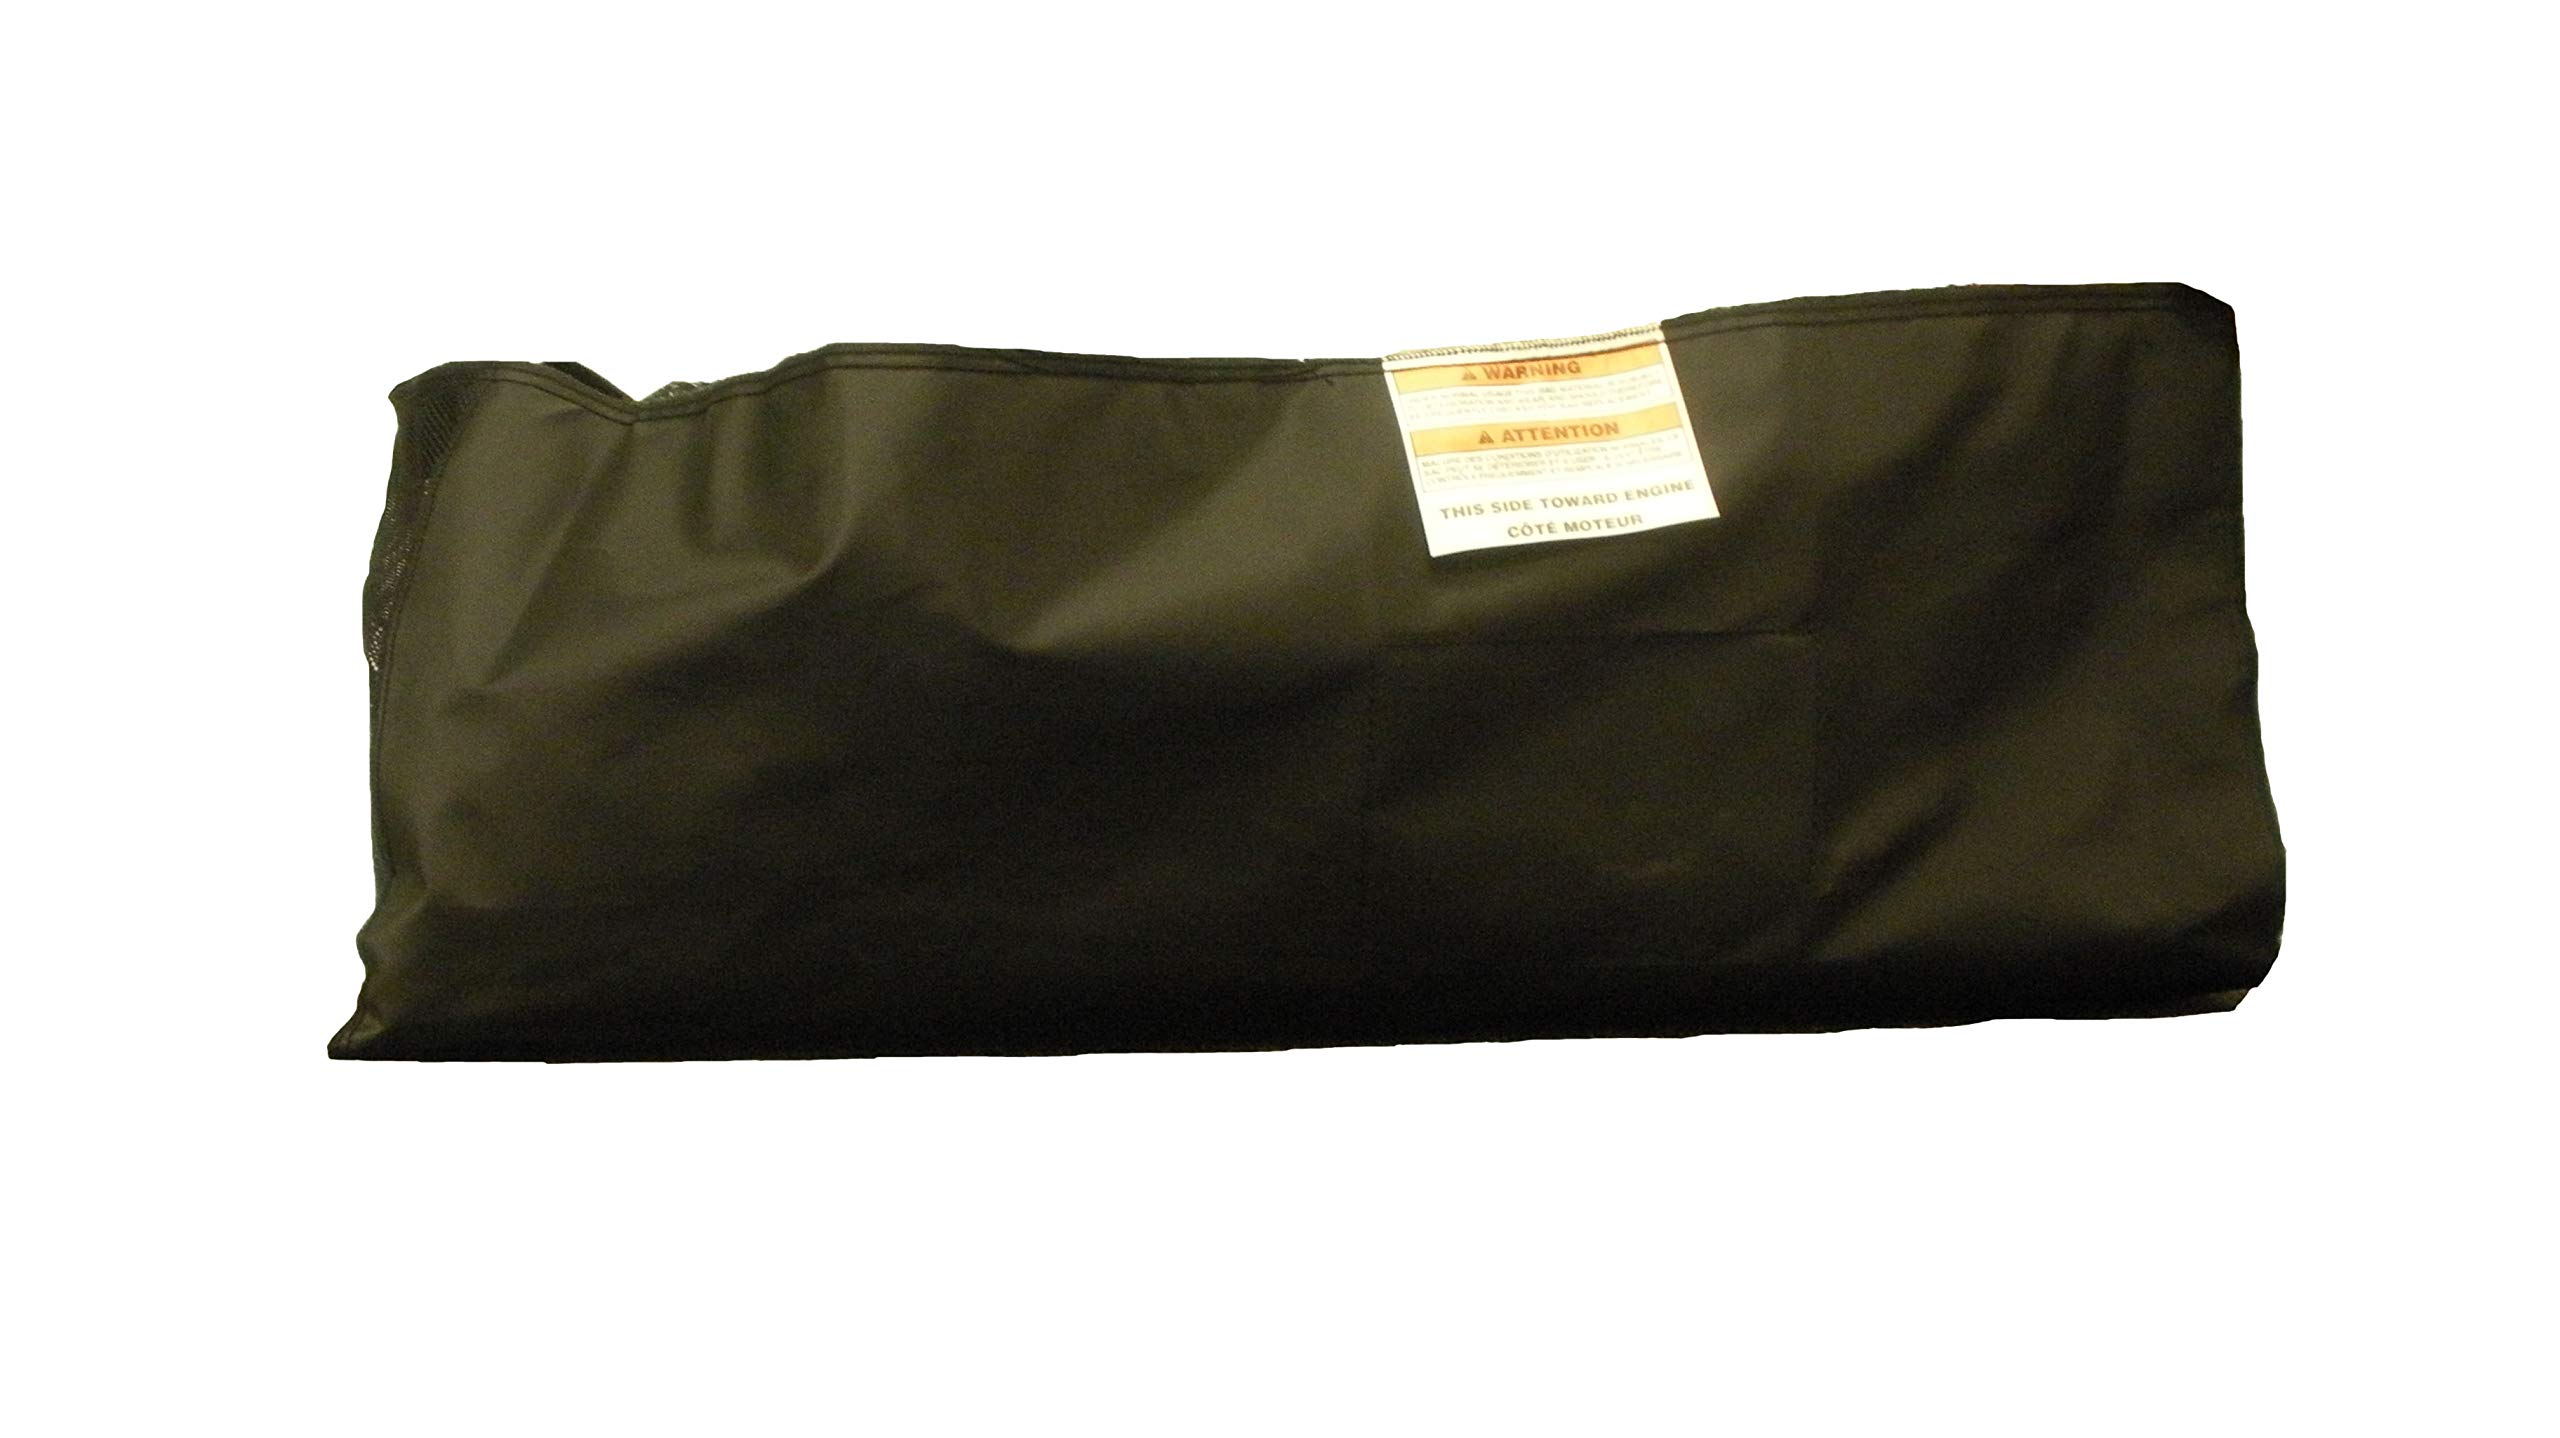 Snapper Residential Rider replacement grass bag. Bag ONLY